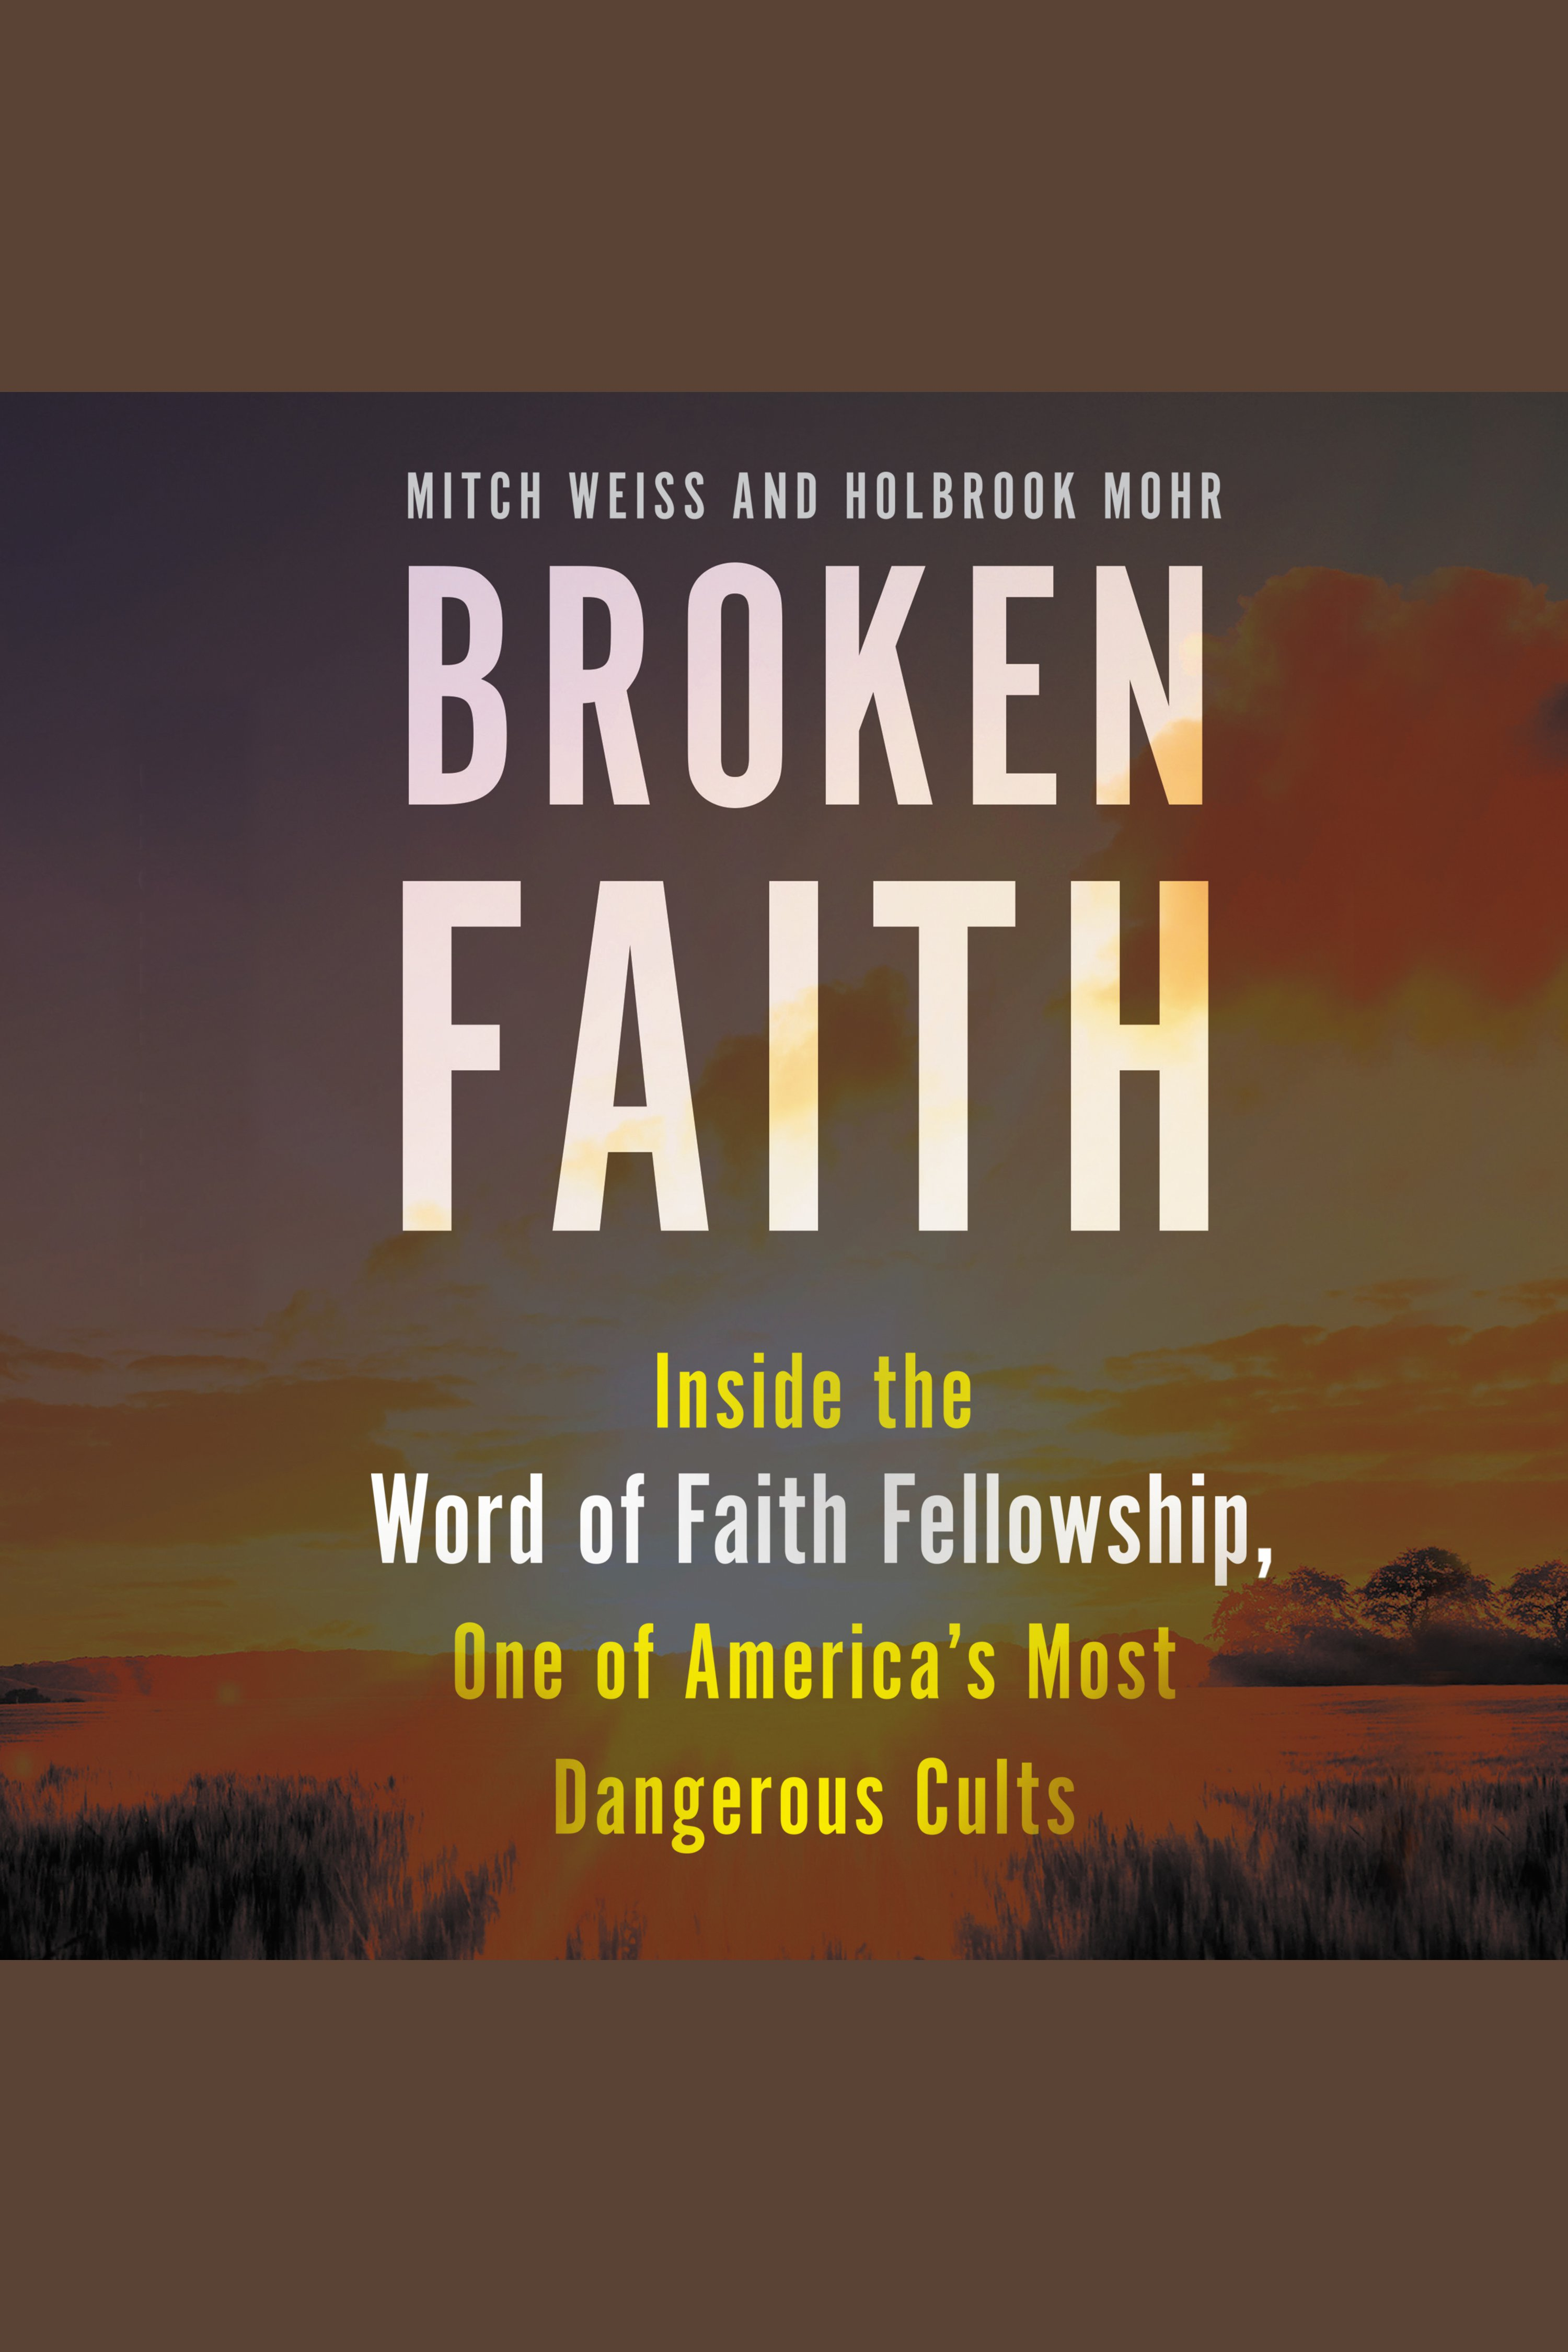 Broken Faith Inside the Word of Faith Fellowship, One of America's Most Dangerous Cults